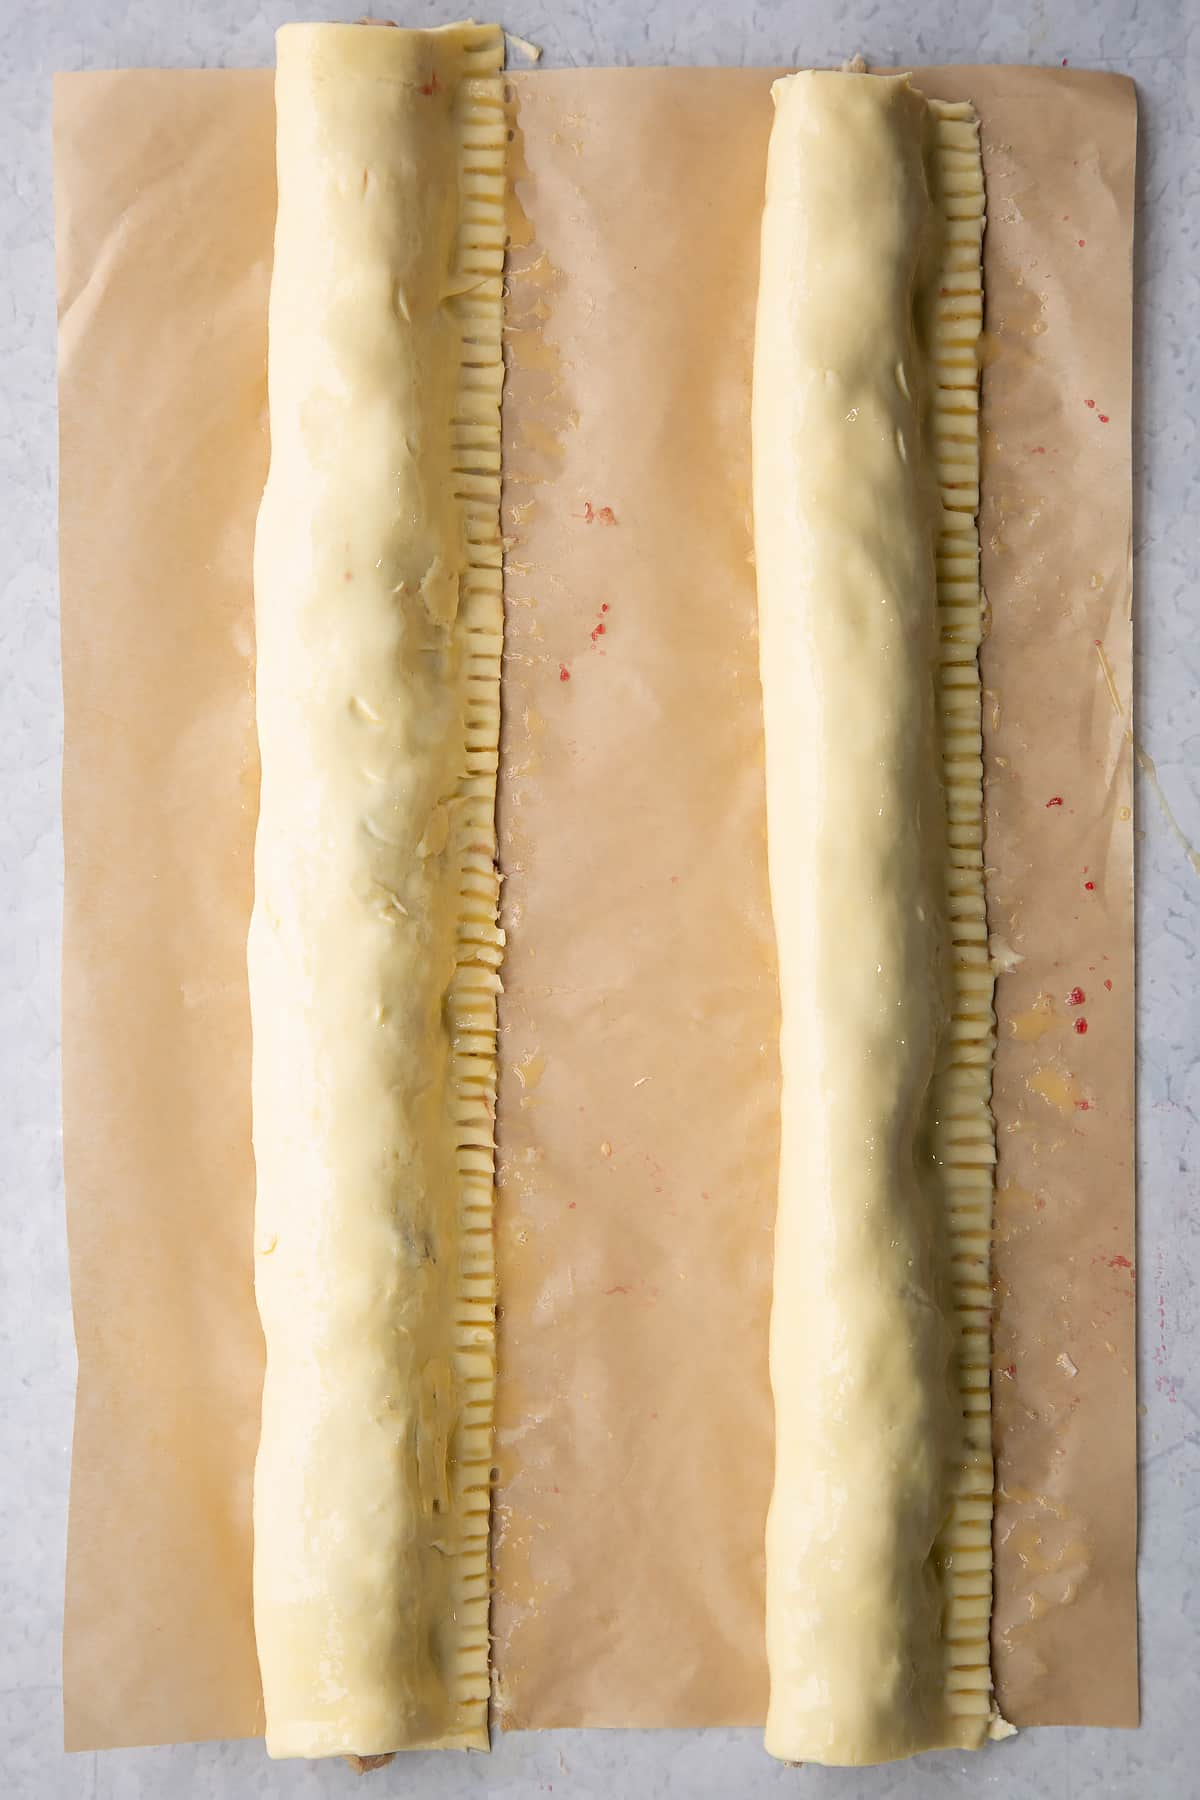 Two lengths of festive sausage meat wrapped in puff pastry. They are egg washed.